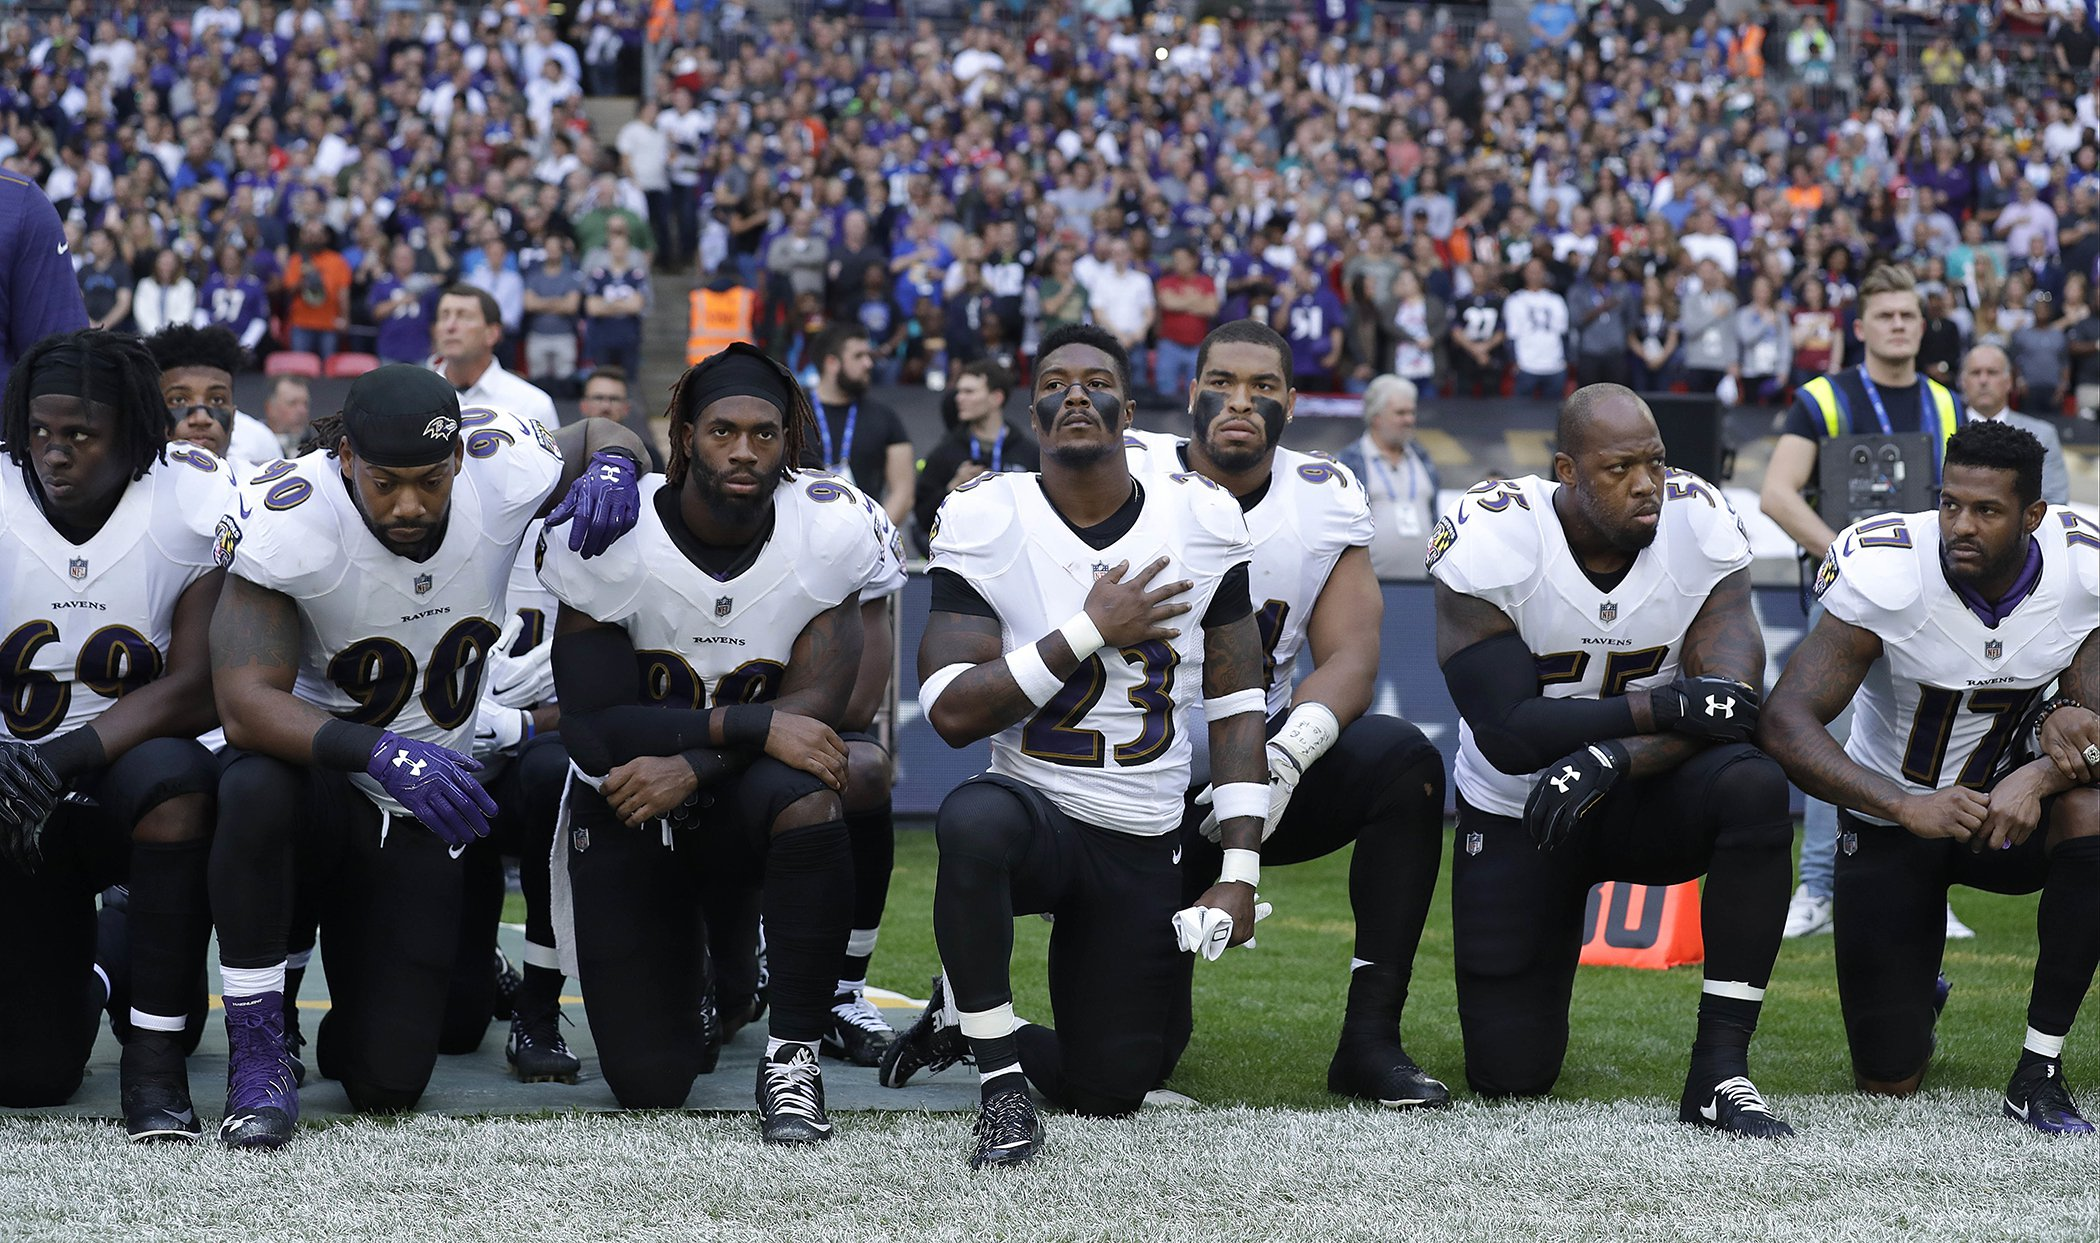 2017-Year-In-Photos-NFL-Protests-18.jpg